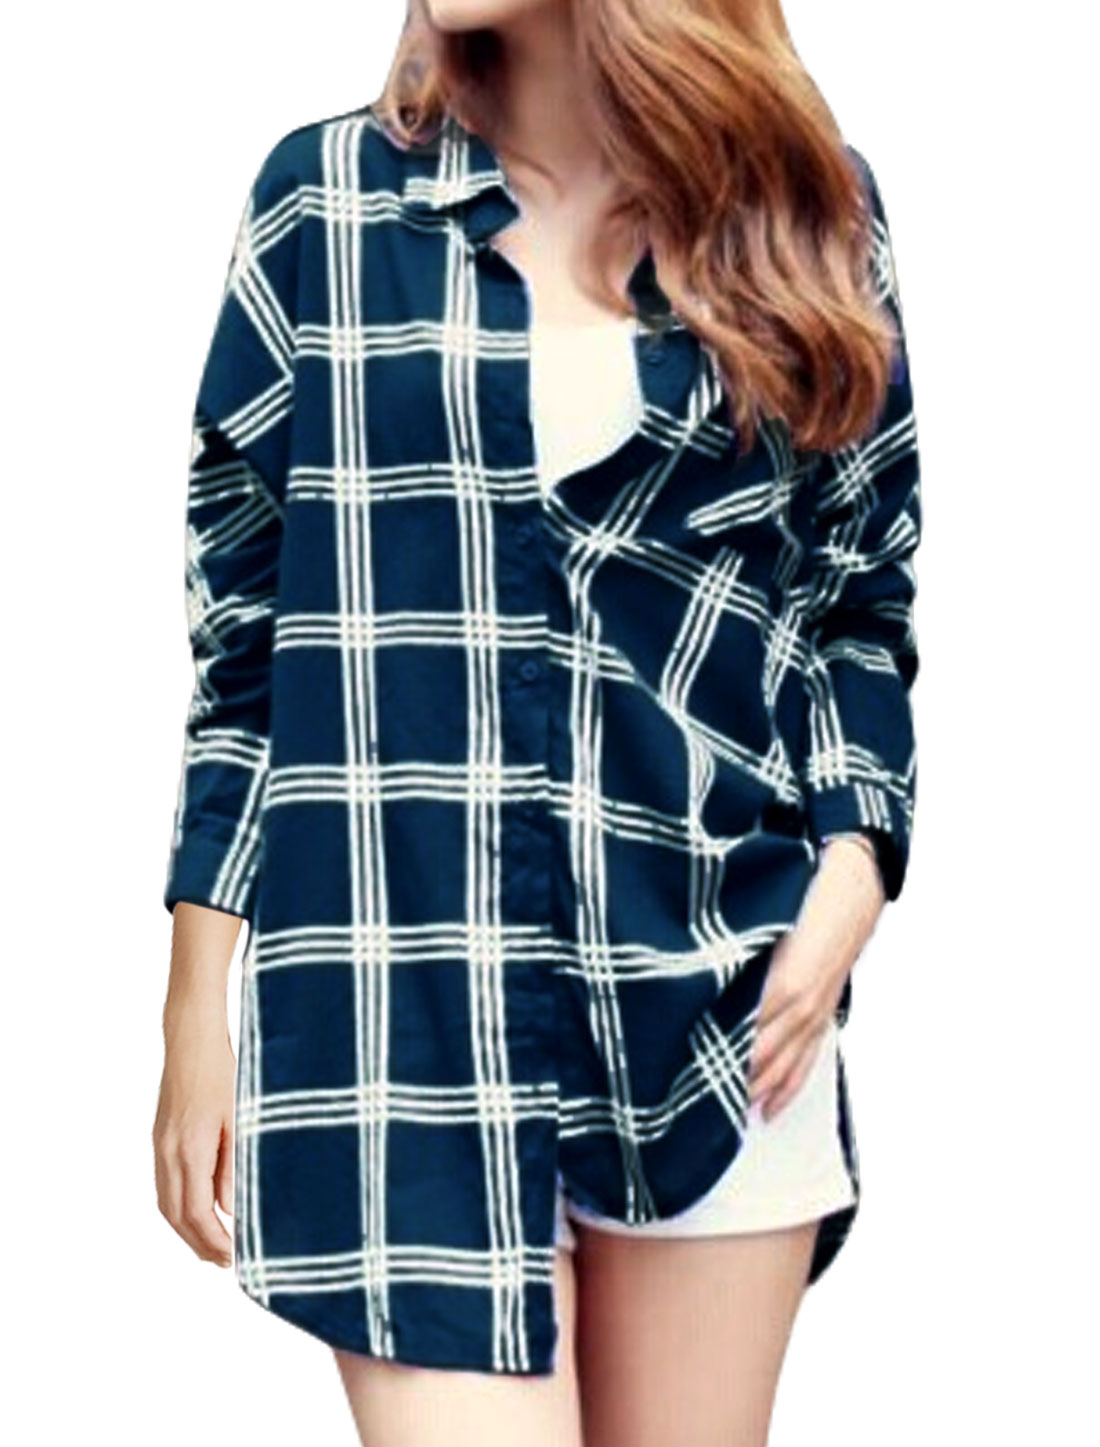 Lady Check Pattern Single Breasted Casual Tunic Shirt Navy Blue S